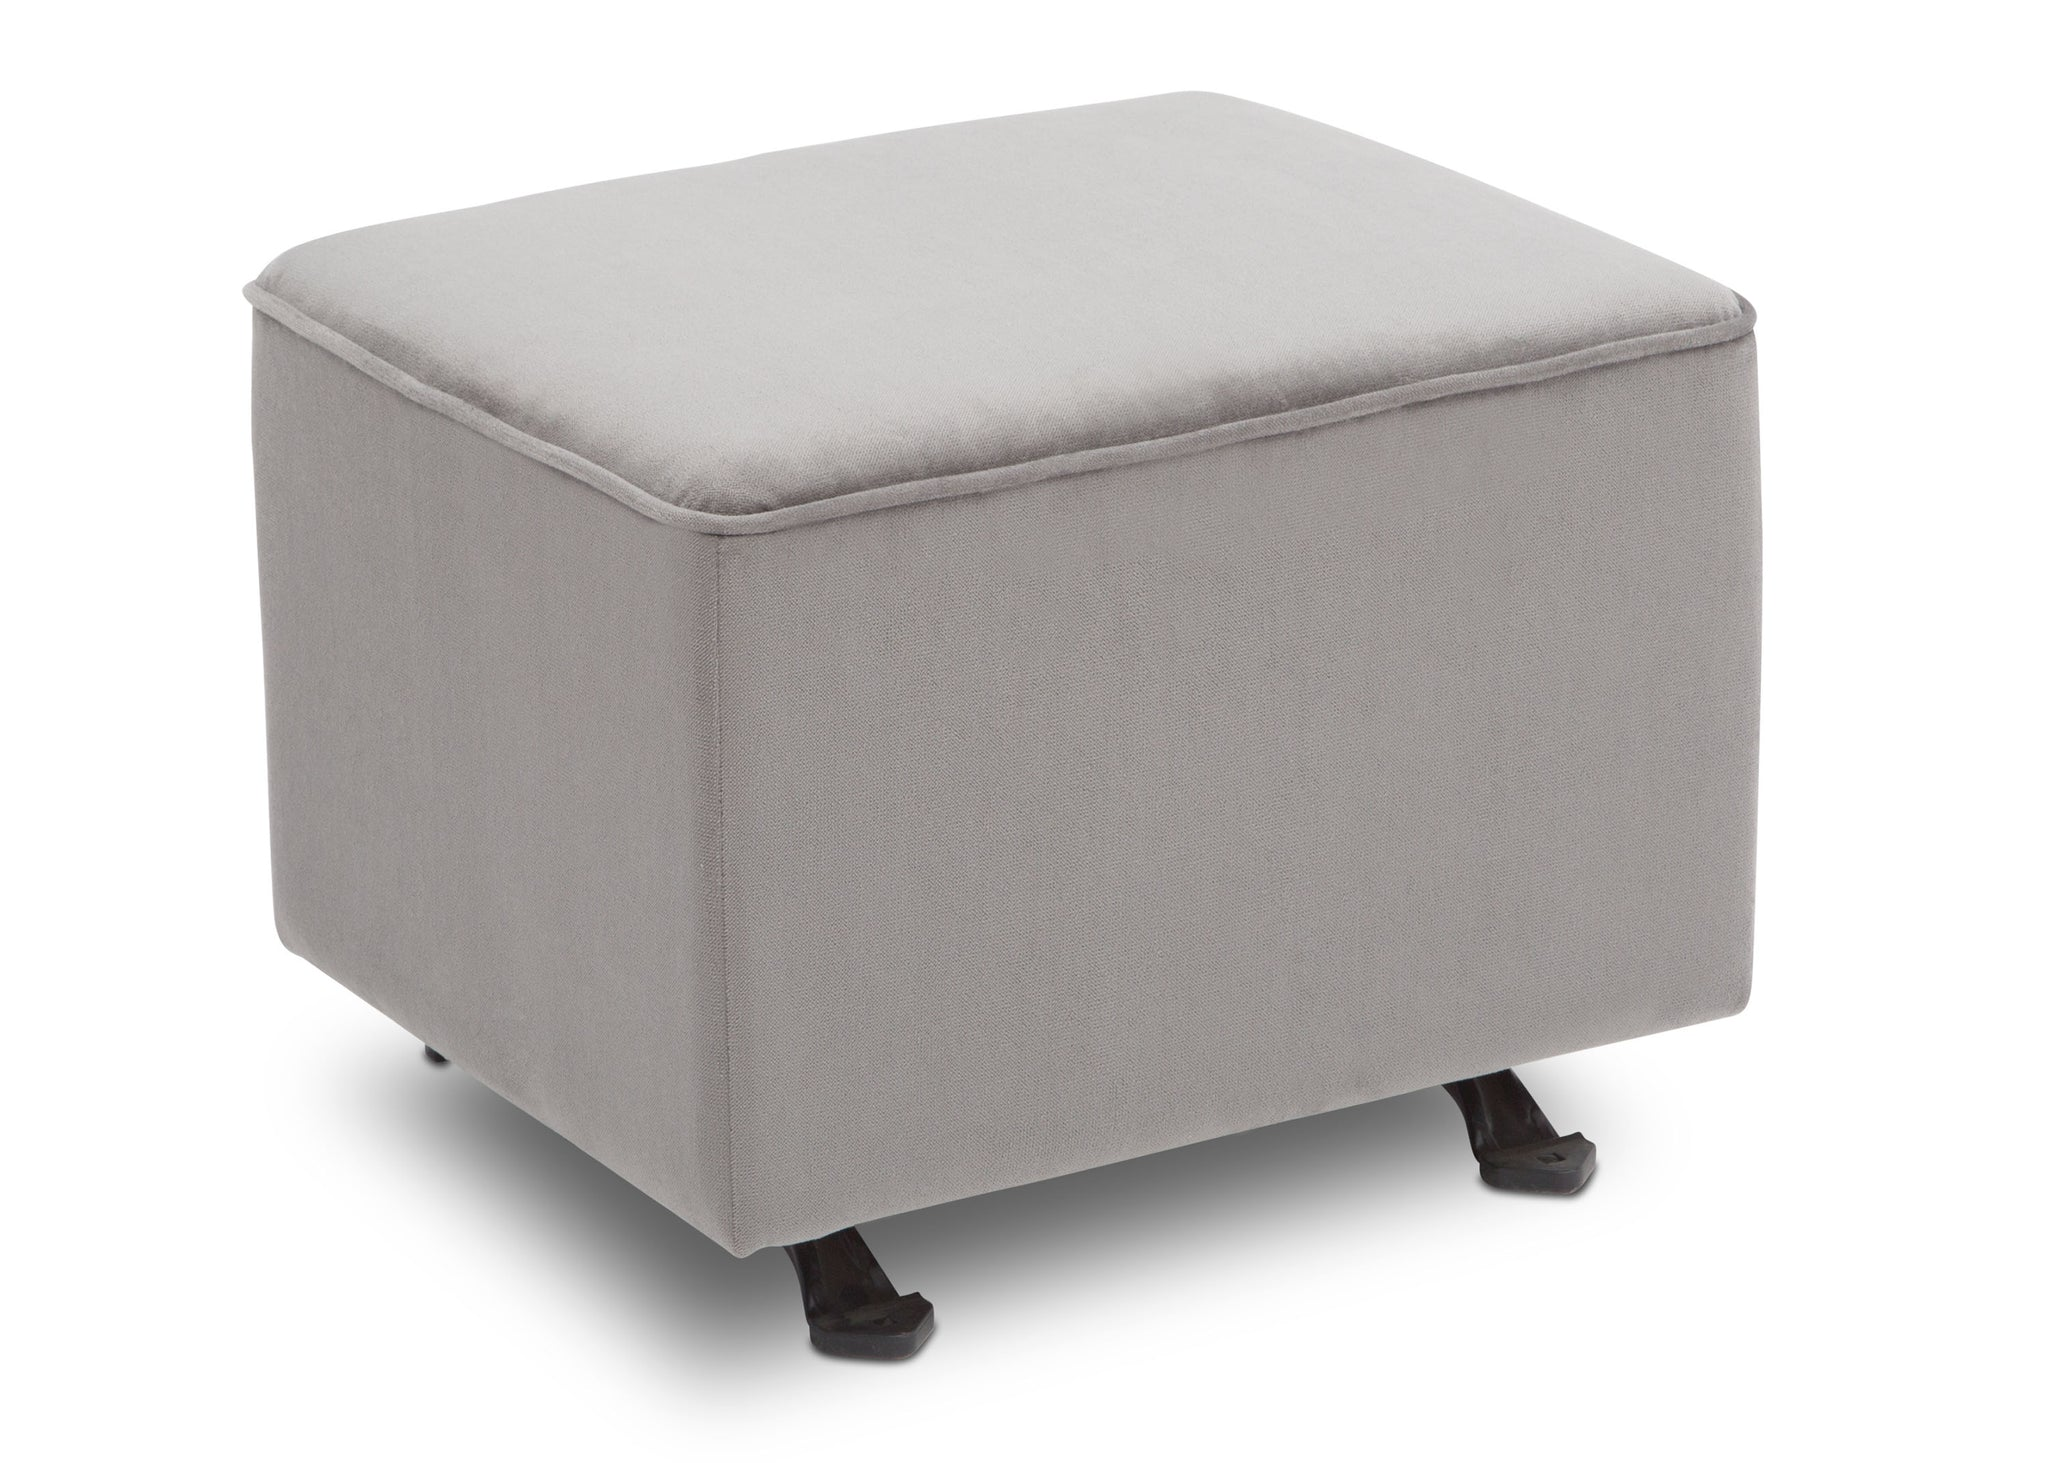 Delta Children Cloud Grey (1344) Landry Nursery Gliding Ottoman Right View a3a